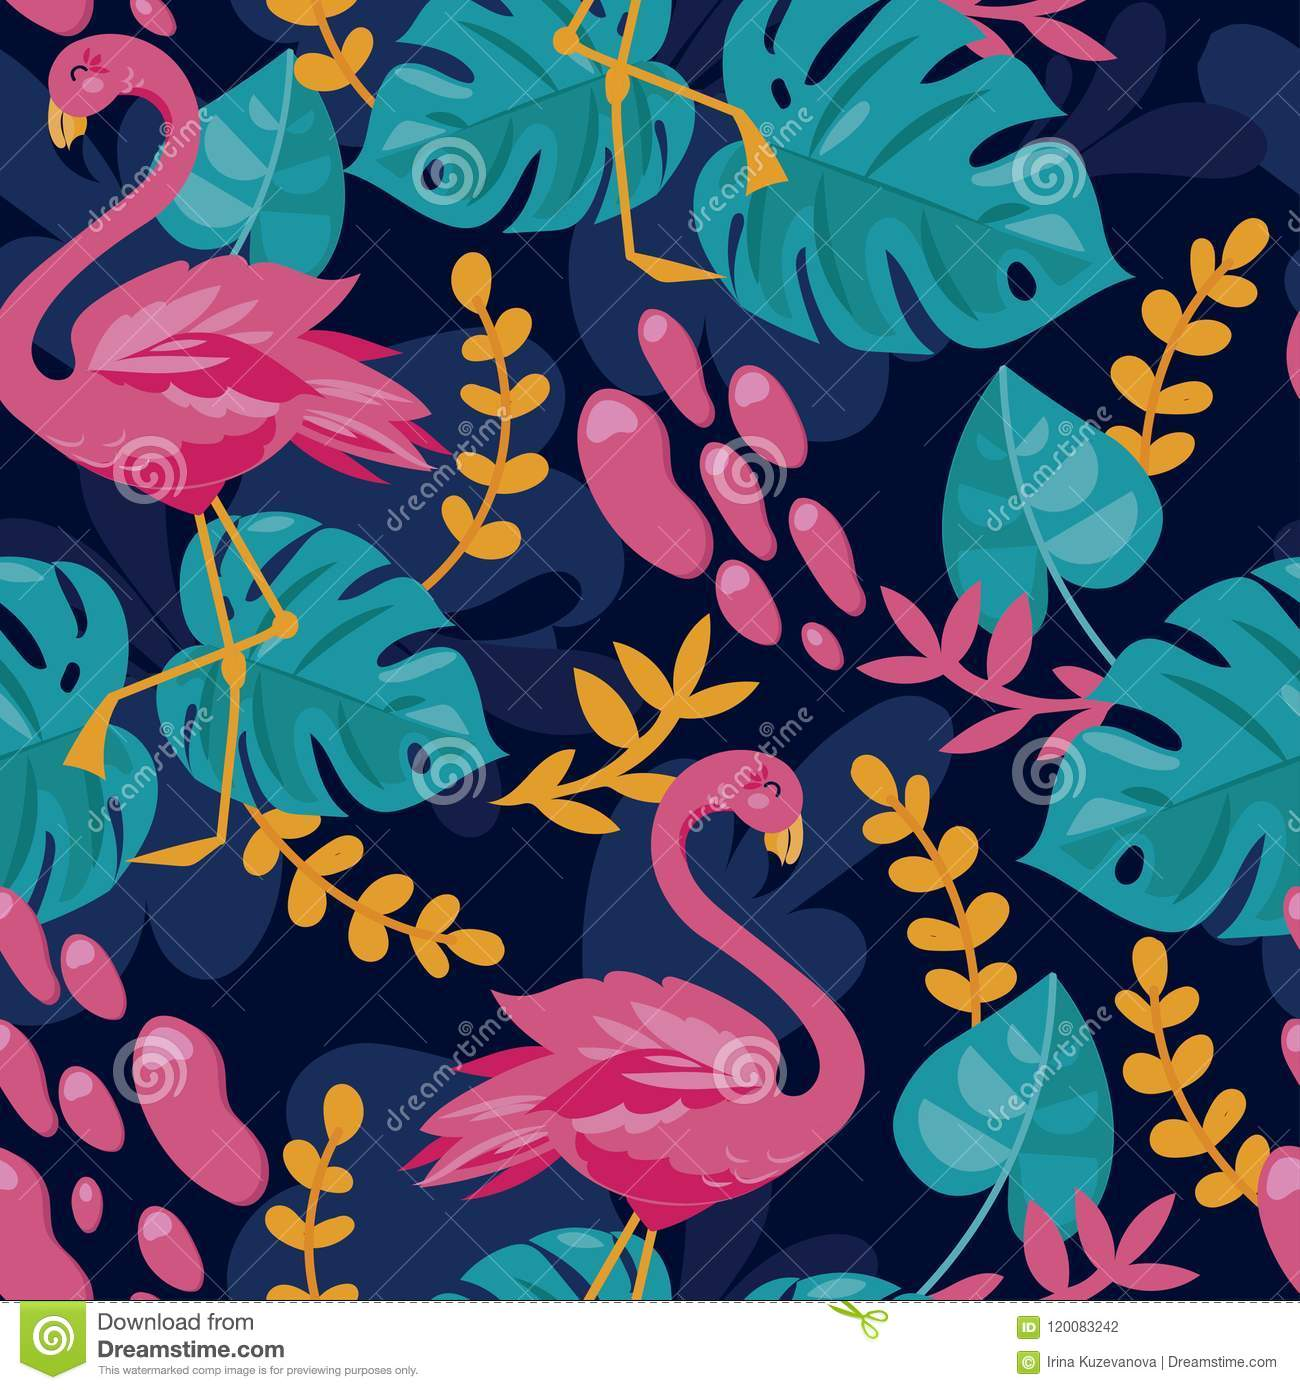 Fundo sem emenda com as folhas cor-de-rosa do flamingo e do monstera